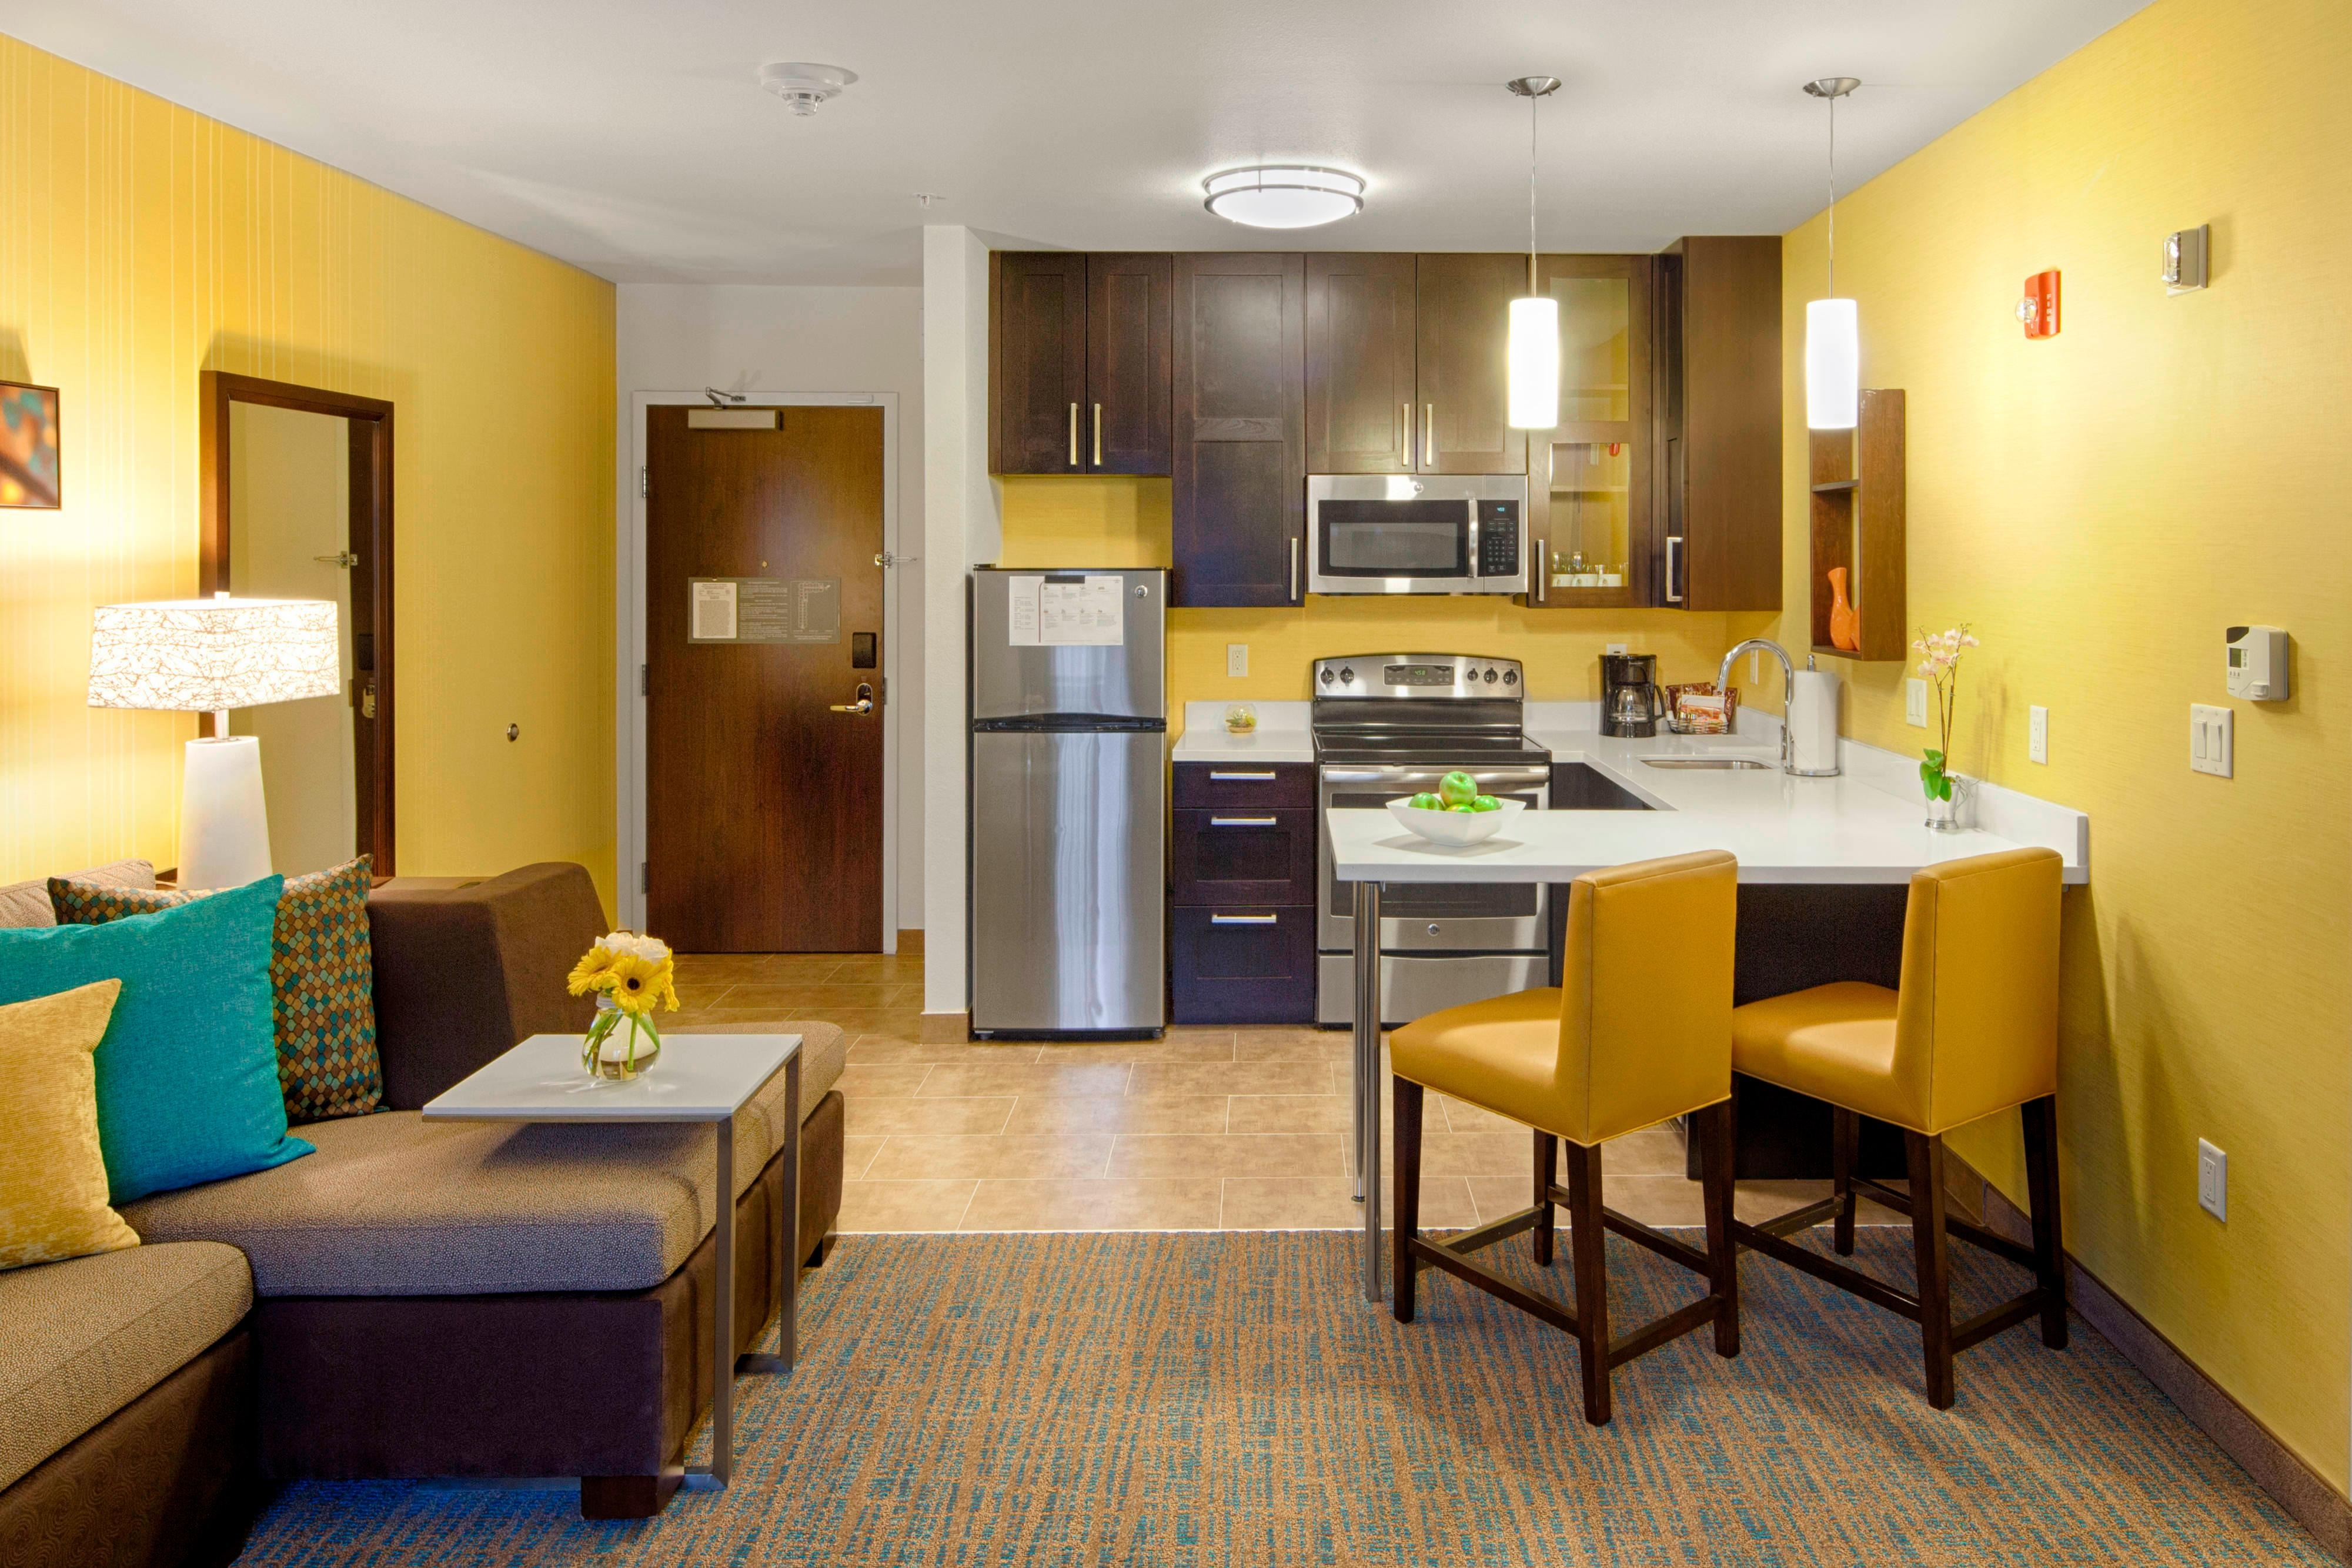 Residence Inn Pullman, Washington Extended Stay Hotel One-Bedroom Suite